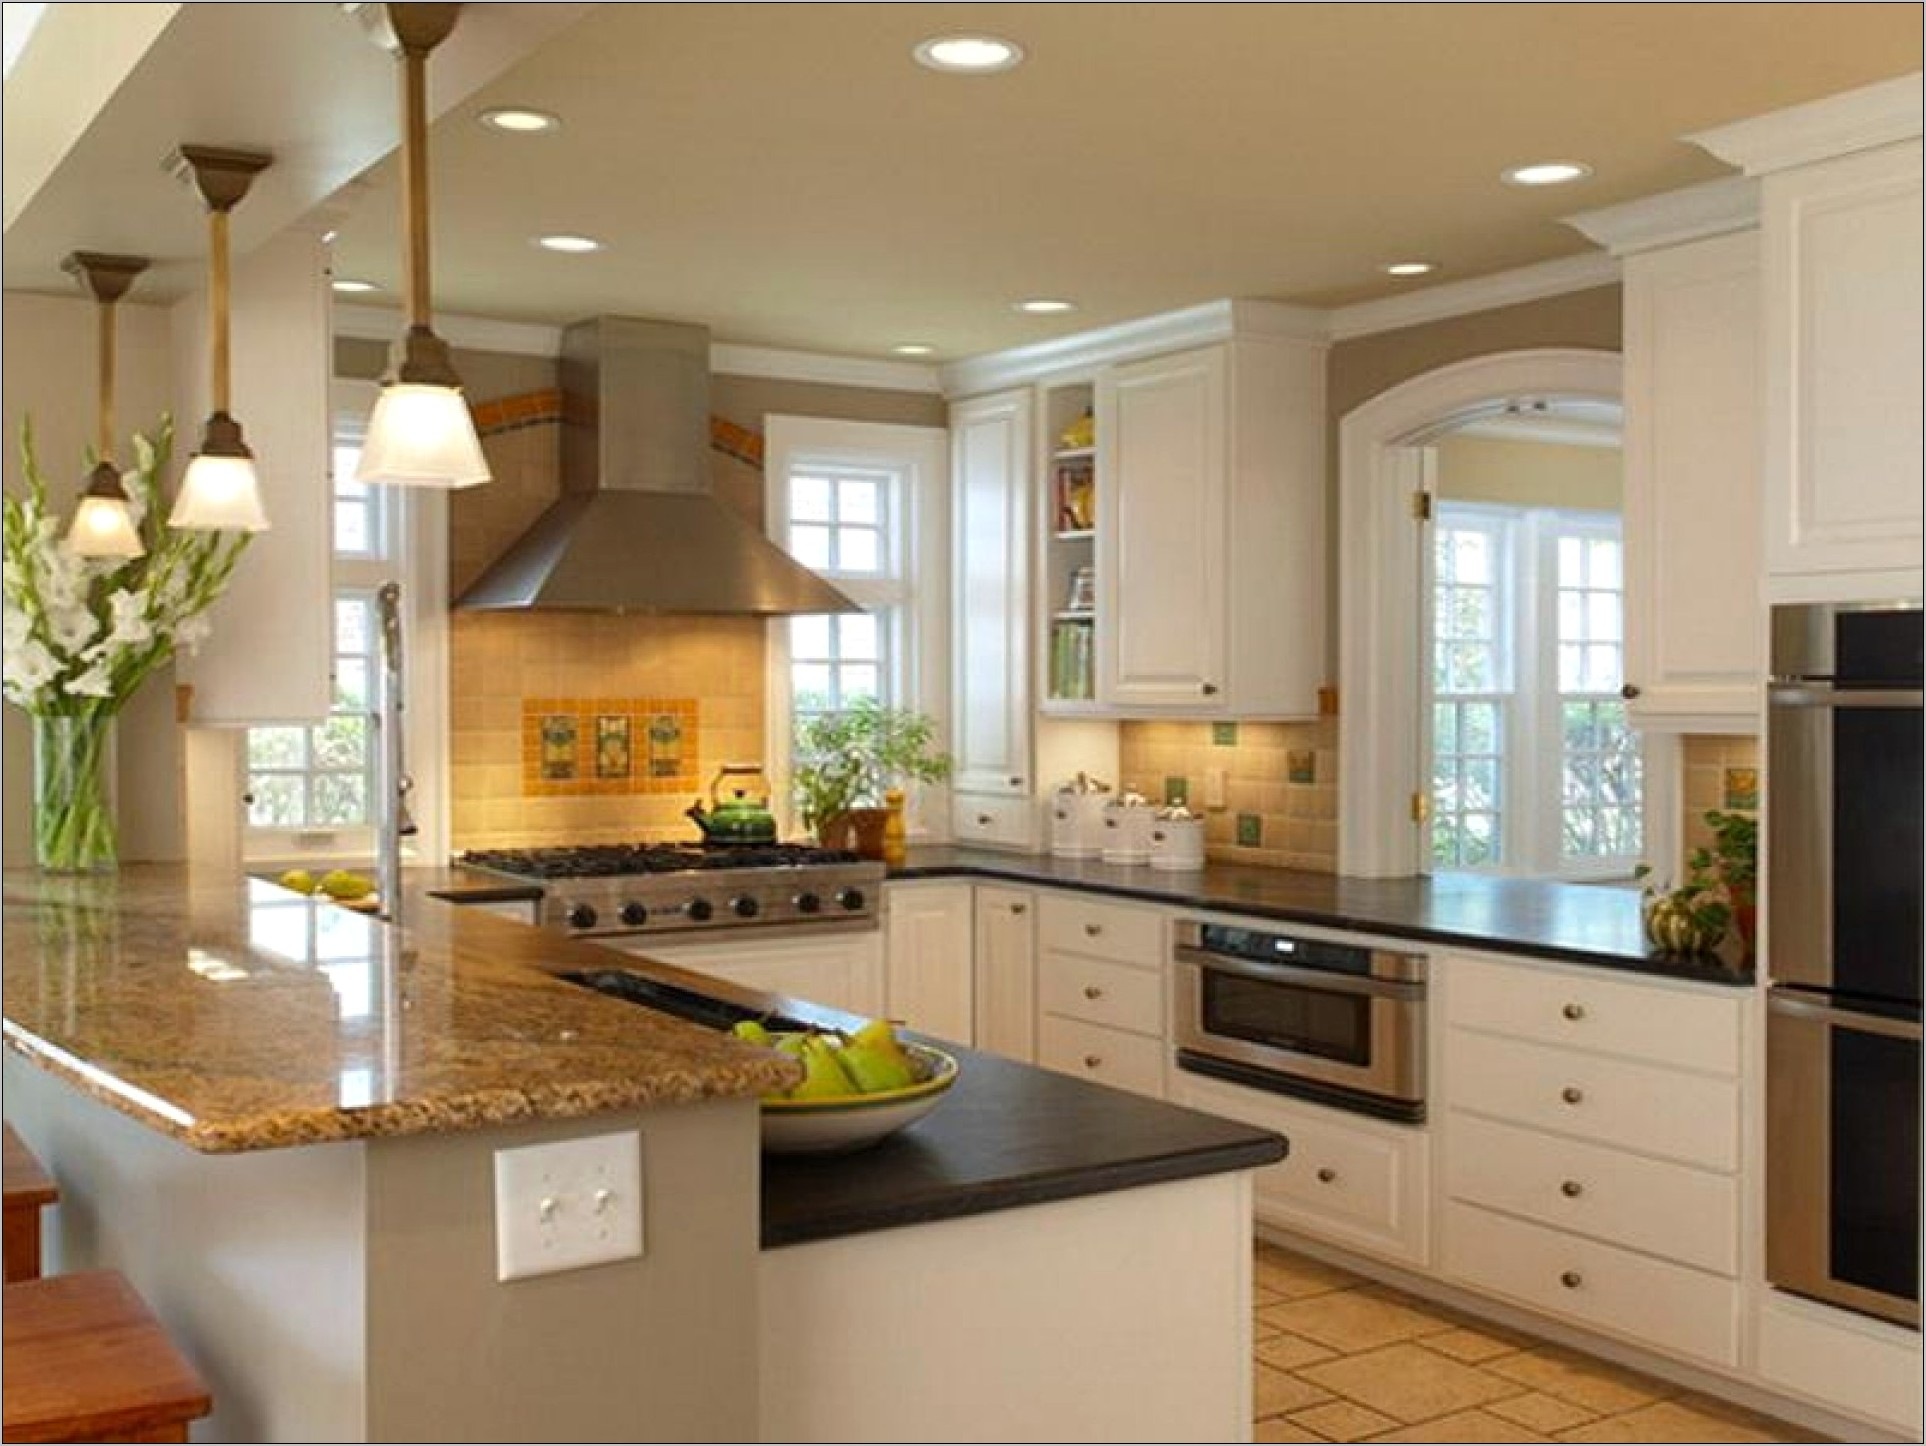 Interior Decorating Small Kitchen Designs